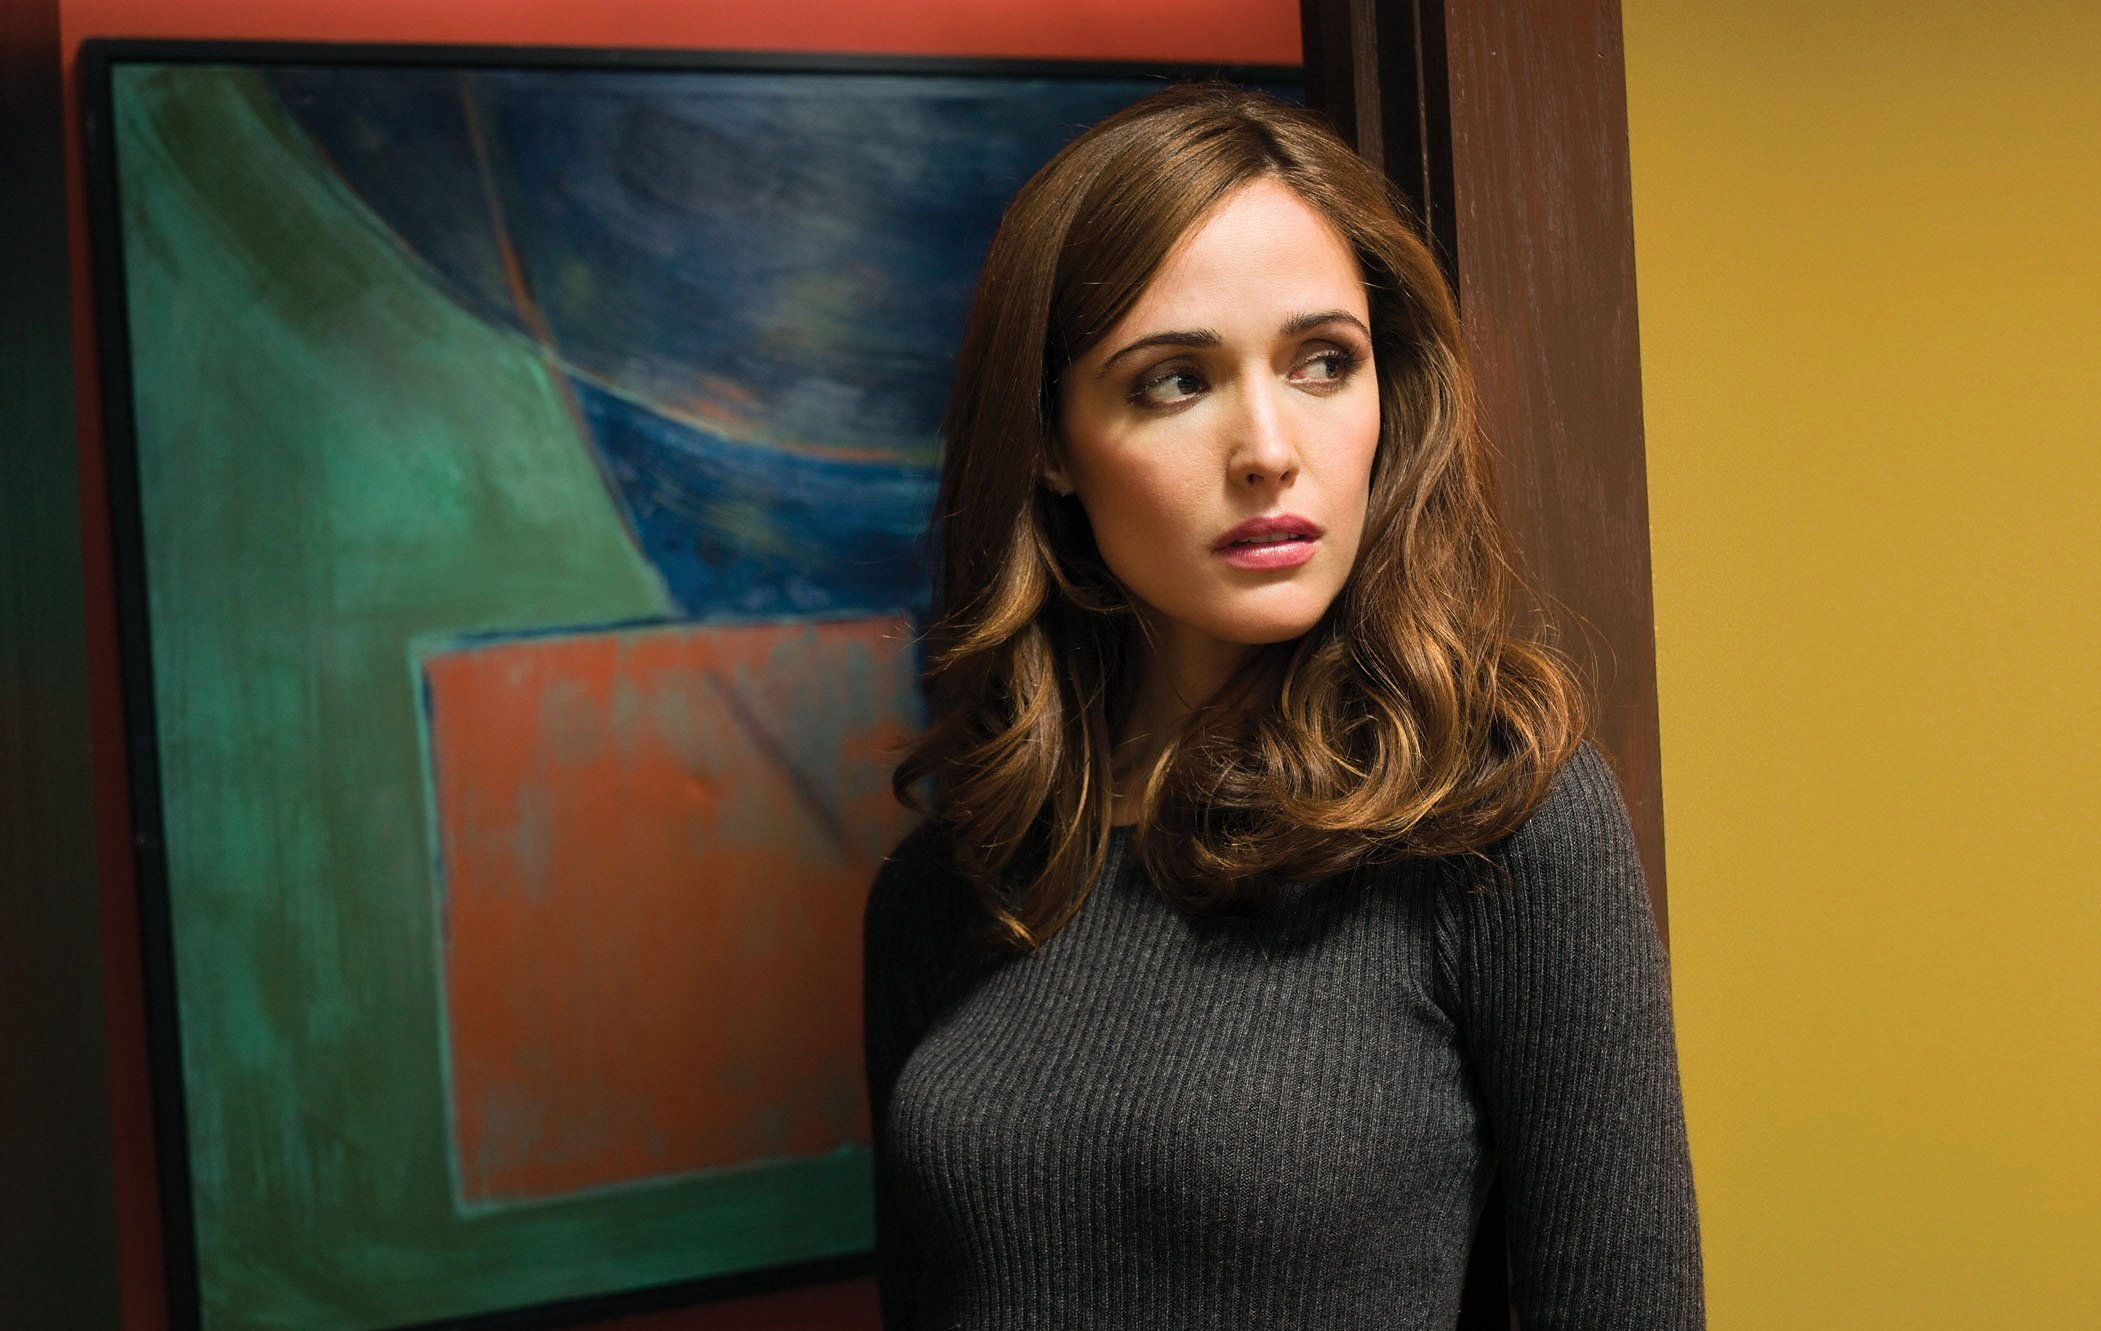 Rose Byrne Rose Byrne new photo